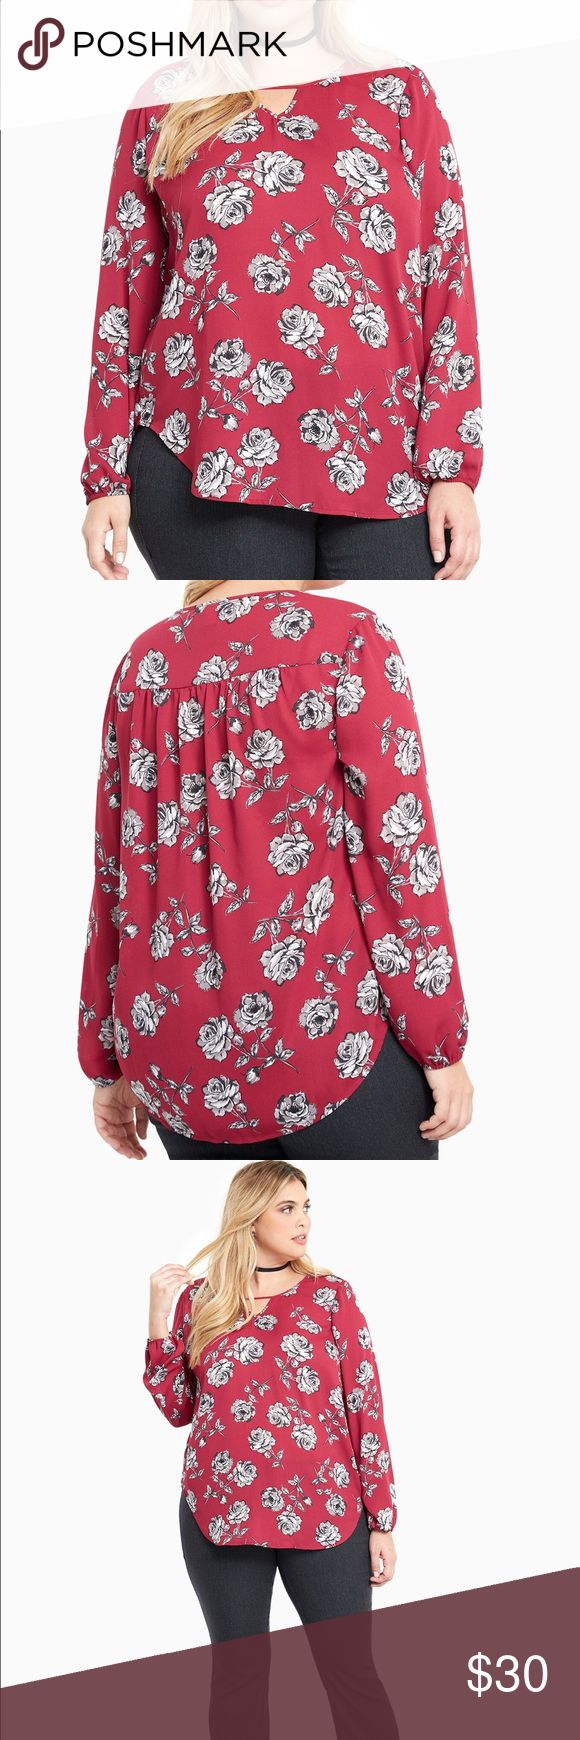 "Torrid Georgette Keyhole Floral Top 5 out of 5 stylists agree; this top guarantees that you'll be the best-dressed everywhere you go. The magenta georgette is totally flirty with a monochrome floral print, while the keyhole neck is sexy without becoming scandalous. The curved shirttail hem basically provides a wind machine everywhere you go. Model is 5'10"", size 1 Size 1 measures 31 1/4"" from shoulder. Polyester. torrid Tops Blouses"